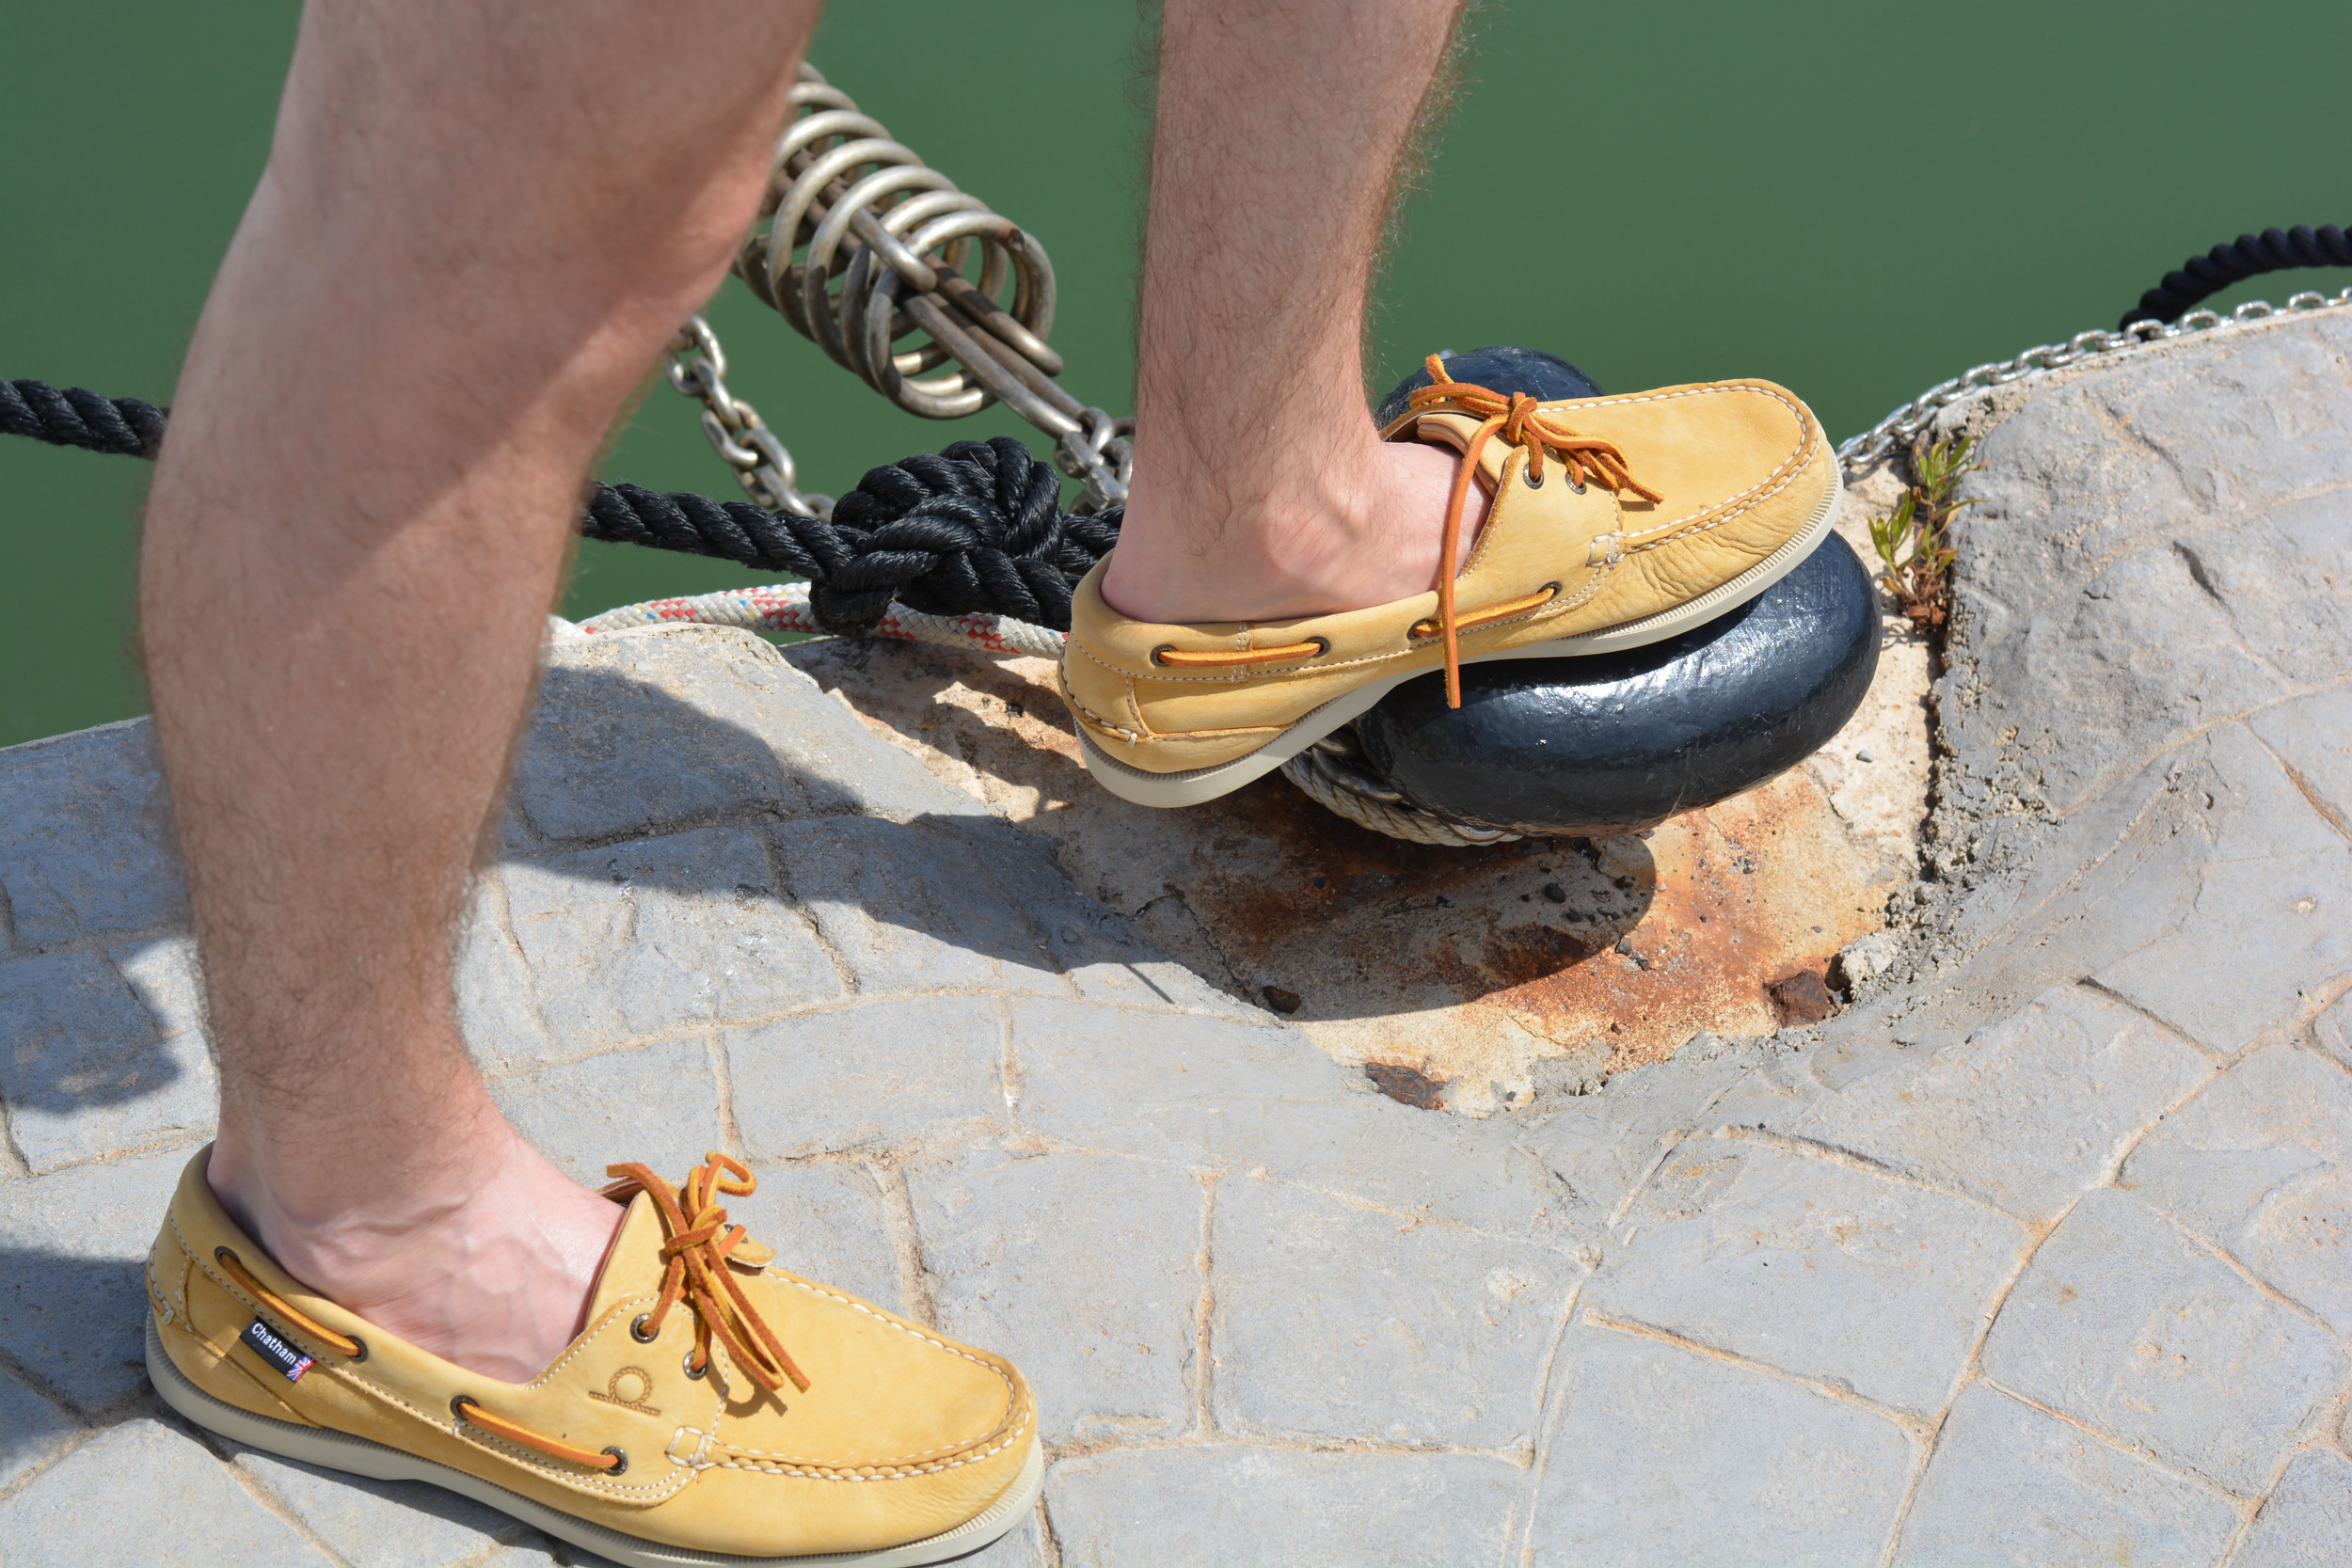 Chatham Compass Shoes | Sam Squire UK Male Fashion & Lifestyle Blogger